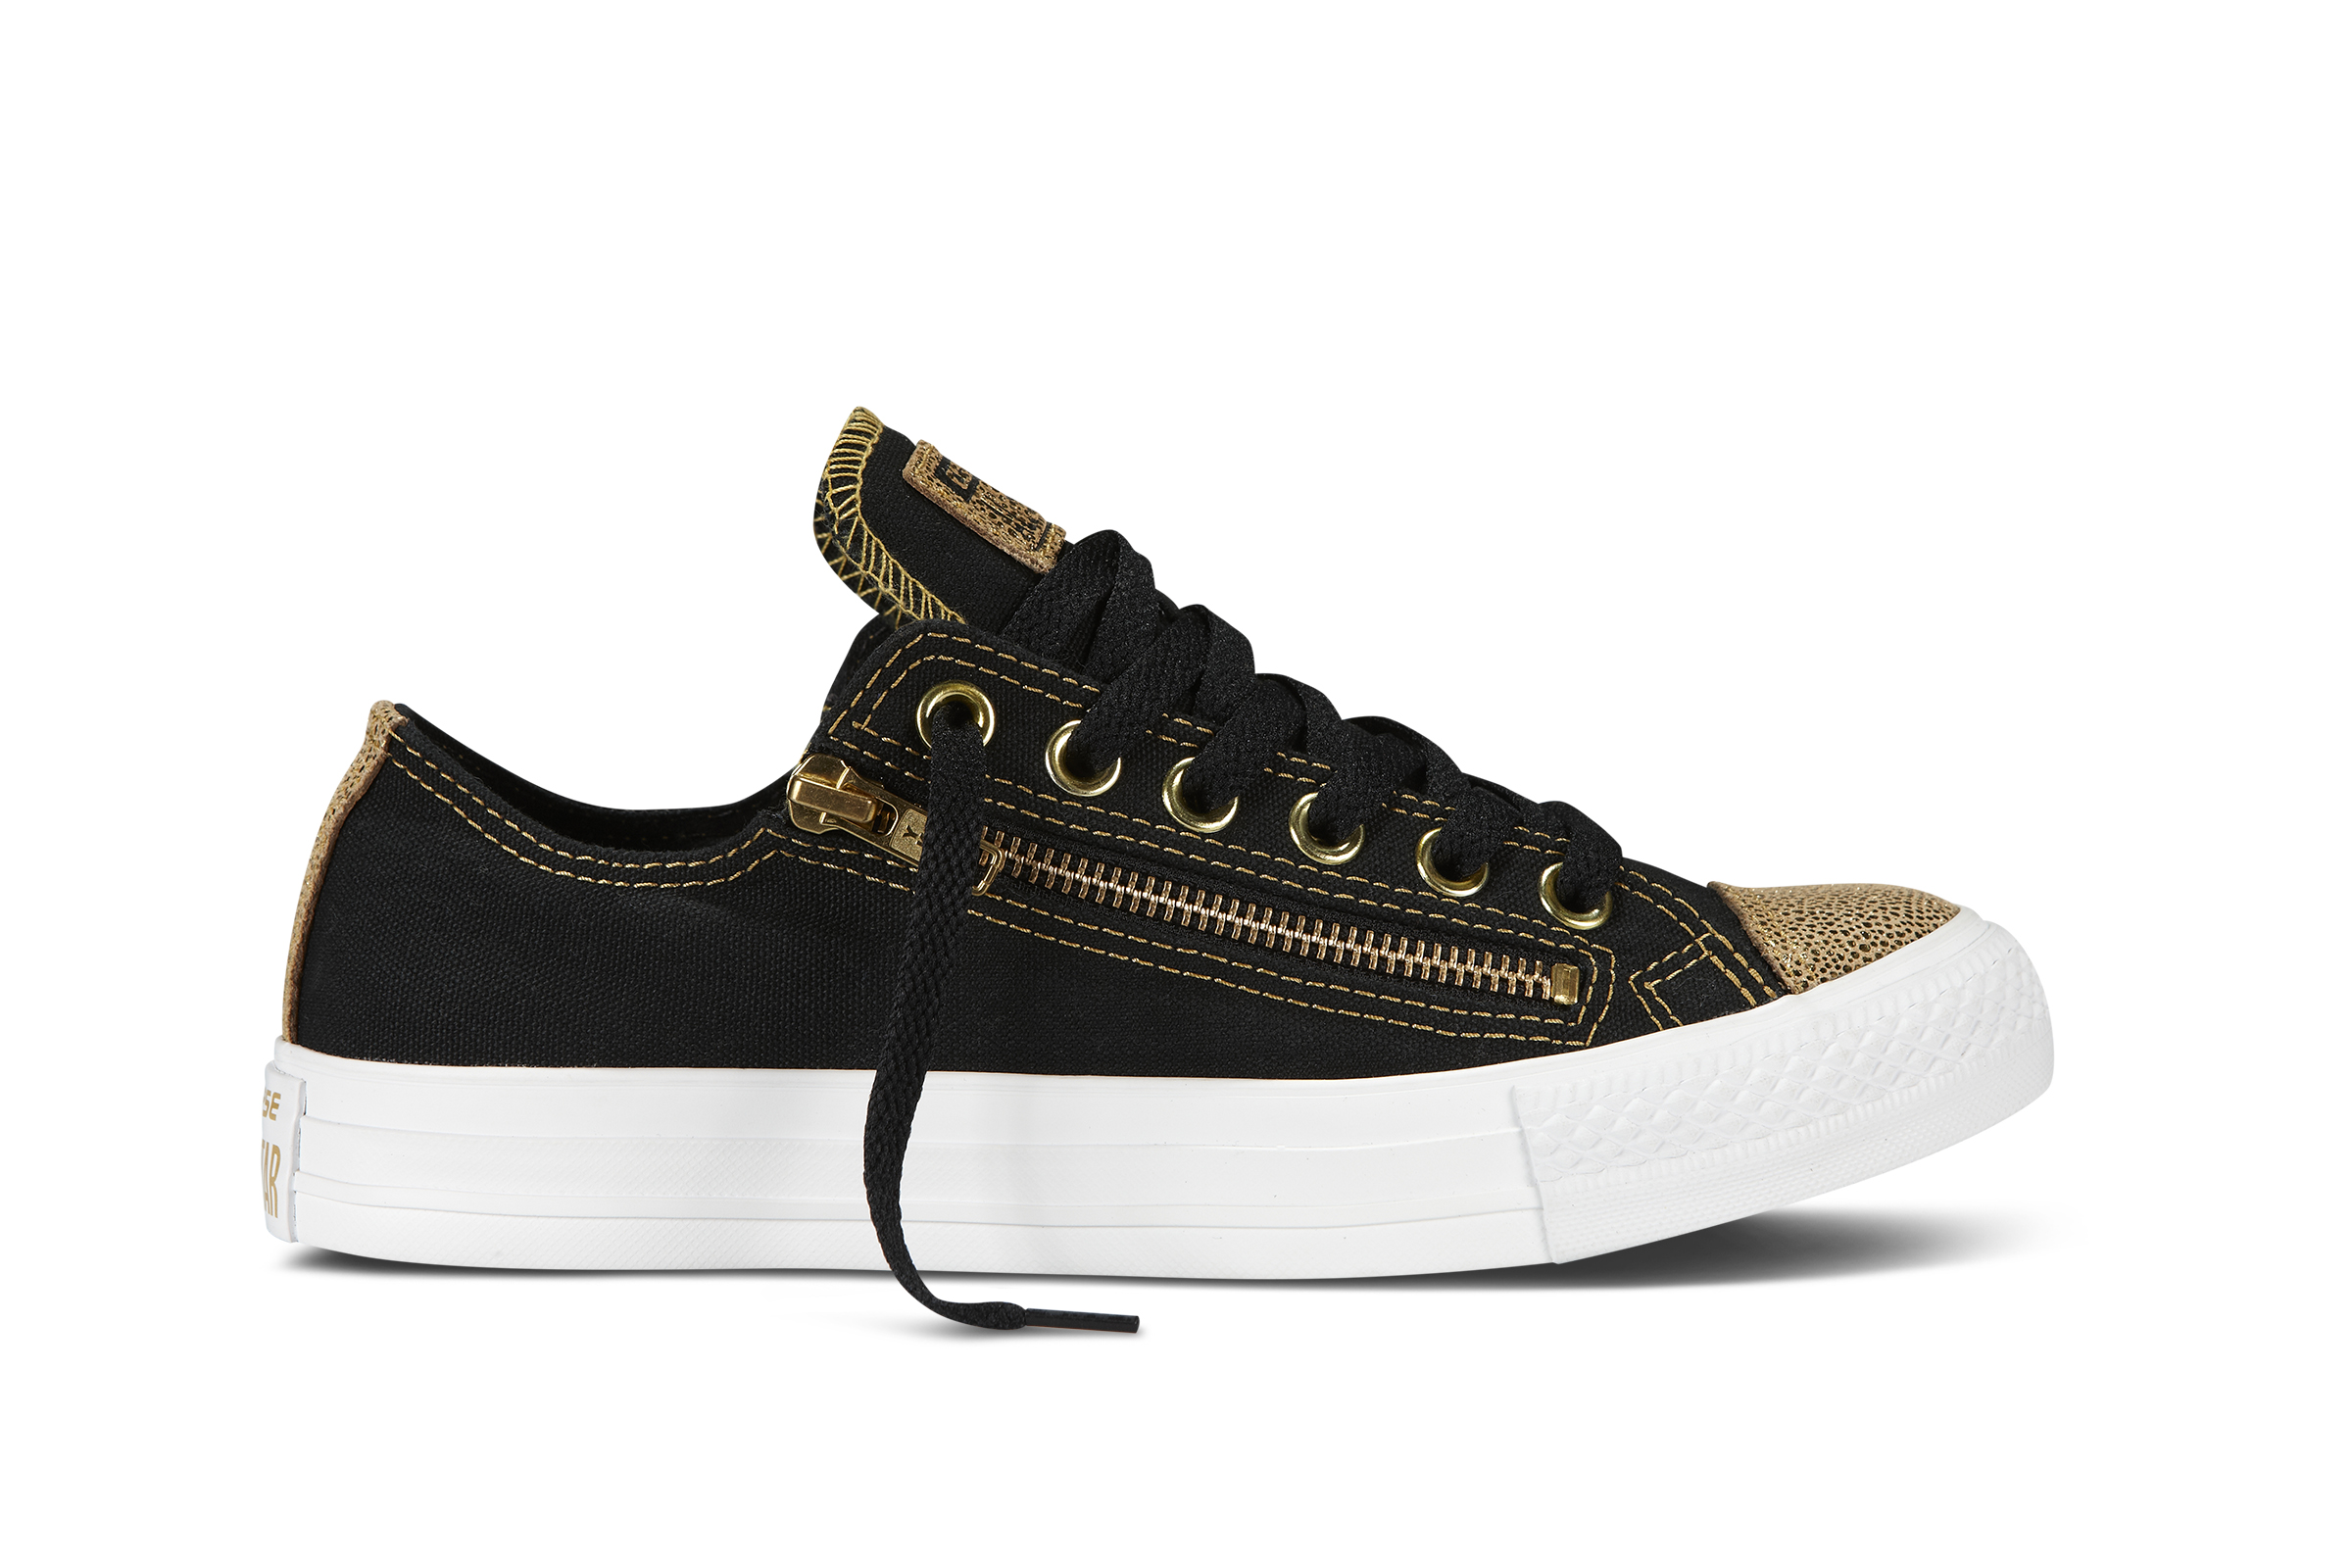 Converse has designed a really attractive low-top Chuck Taylor for